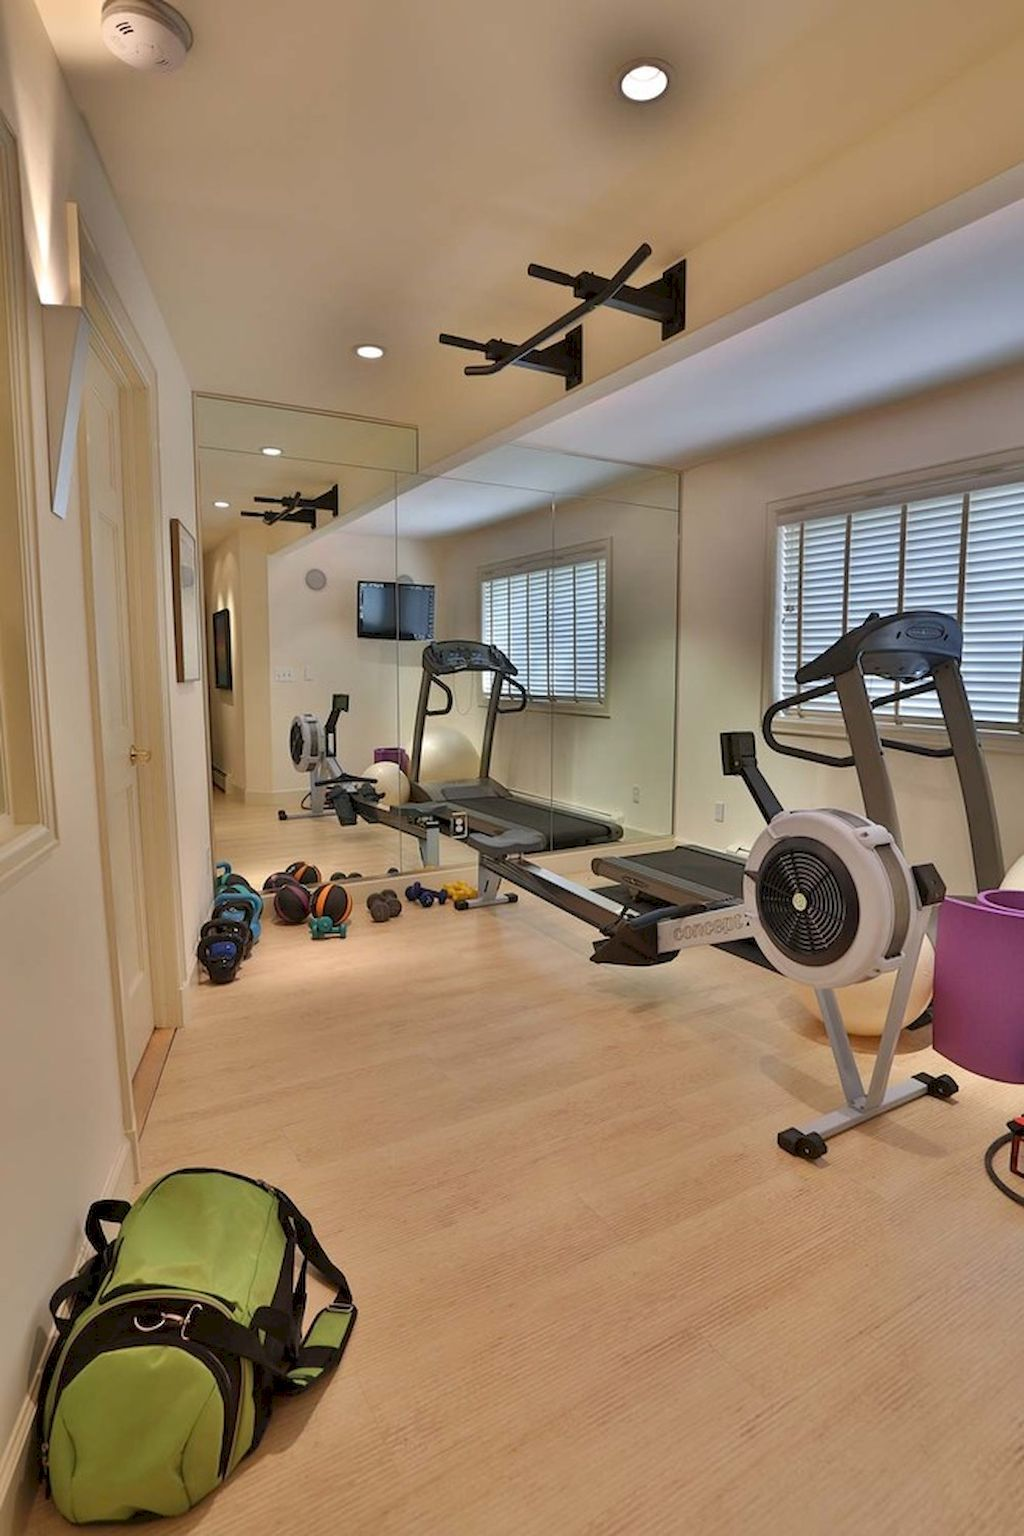 Nice 40 Awesome Home Gym Ideas Small Spaces Https Livingmarch Com Home Gym Ideas Small Spaces Small Home Gyms Gym Room At Home Cheap Home Gym